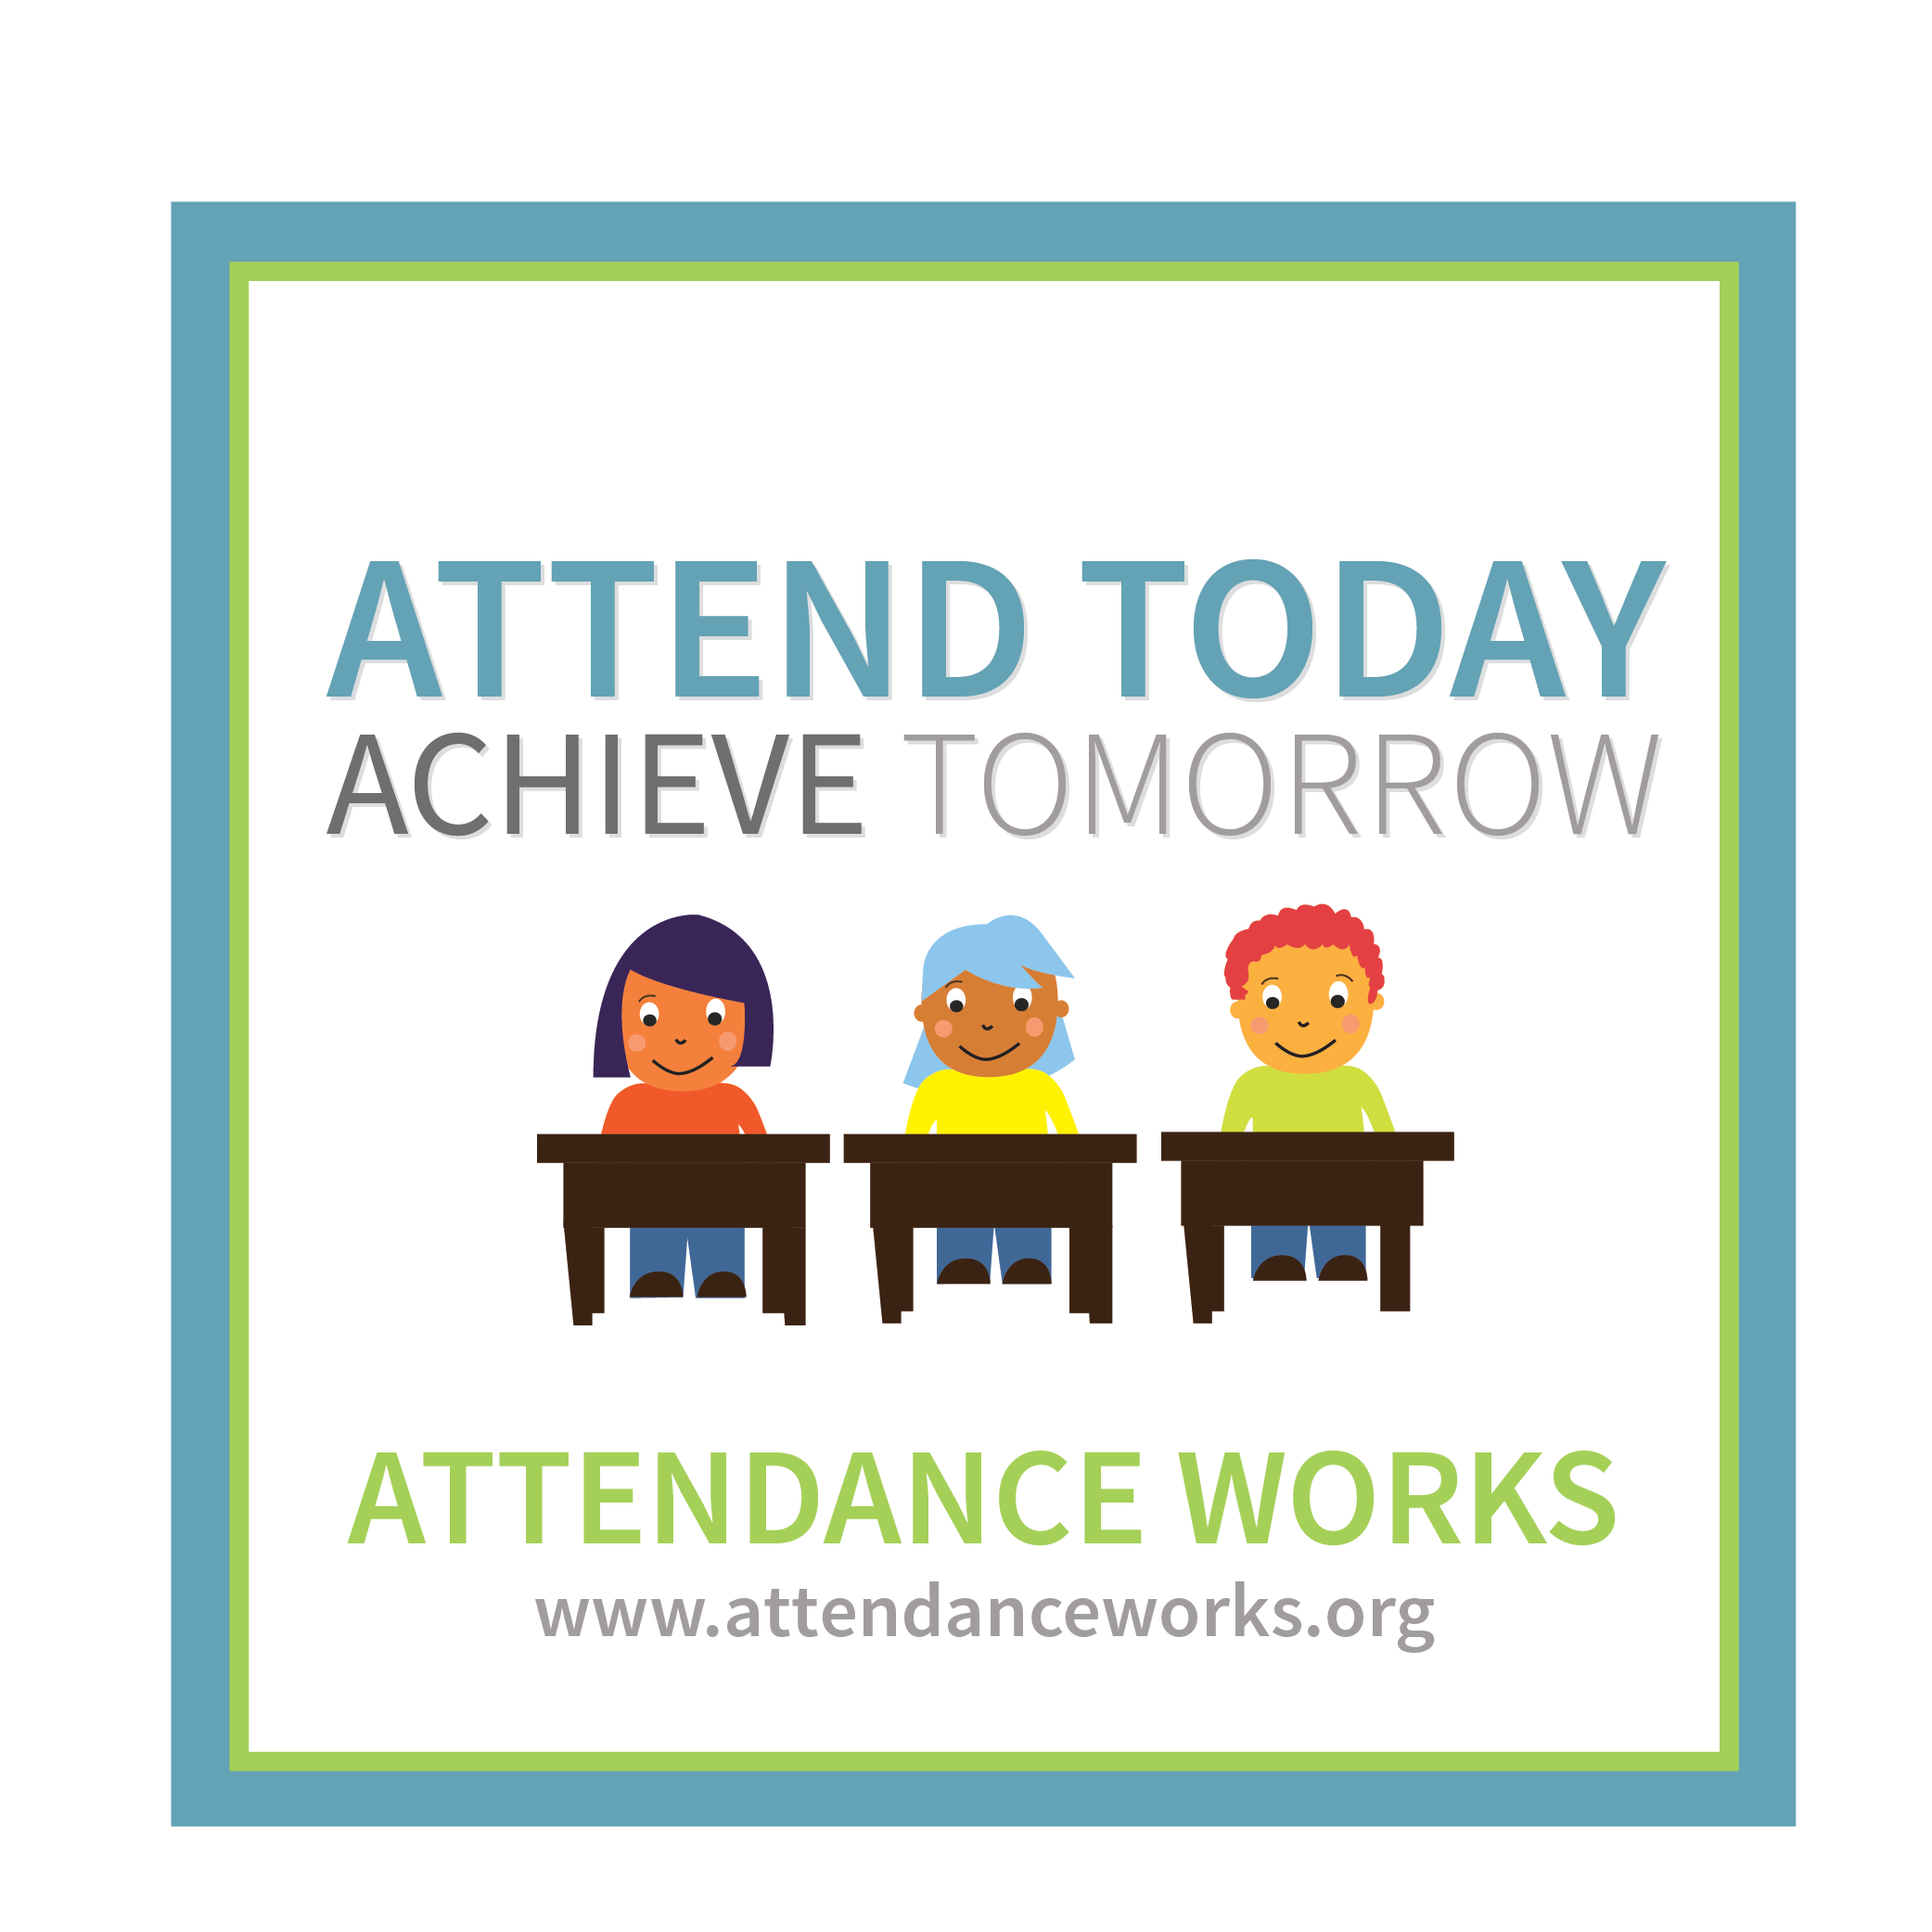 attend today achieve tomorrow www.attendanceworks.org